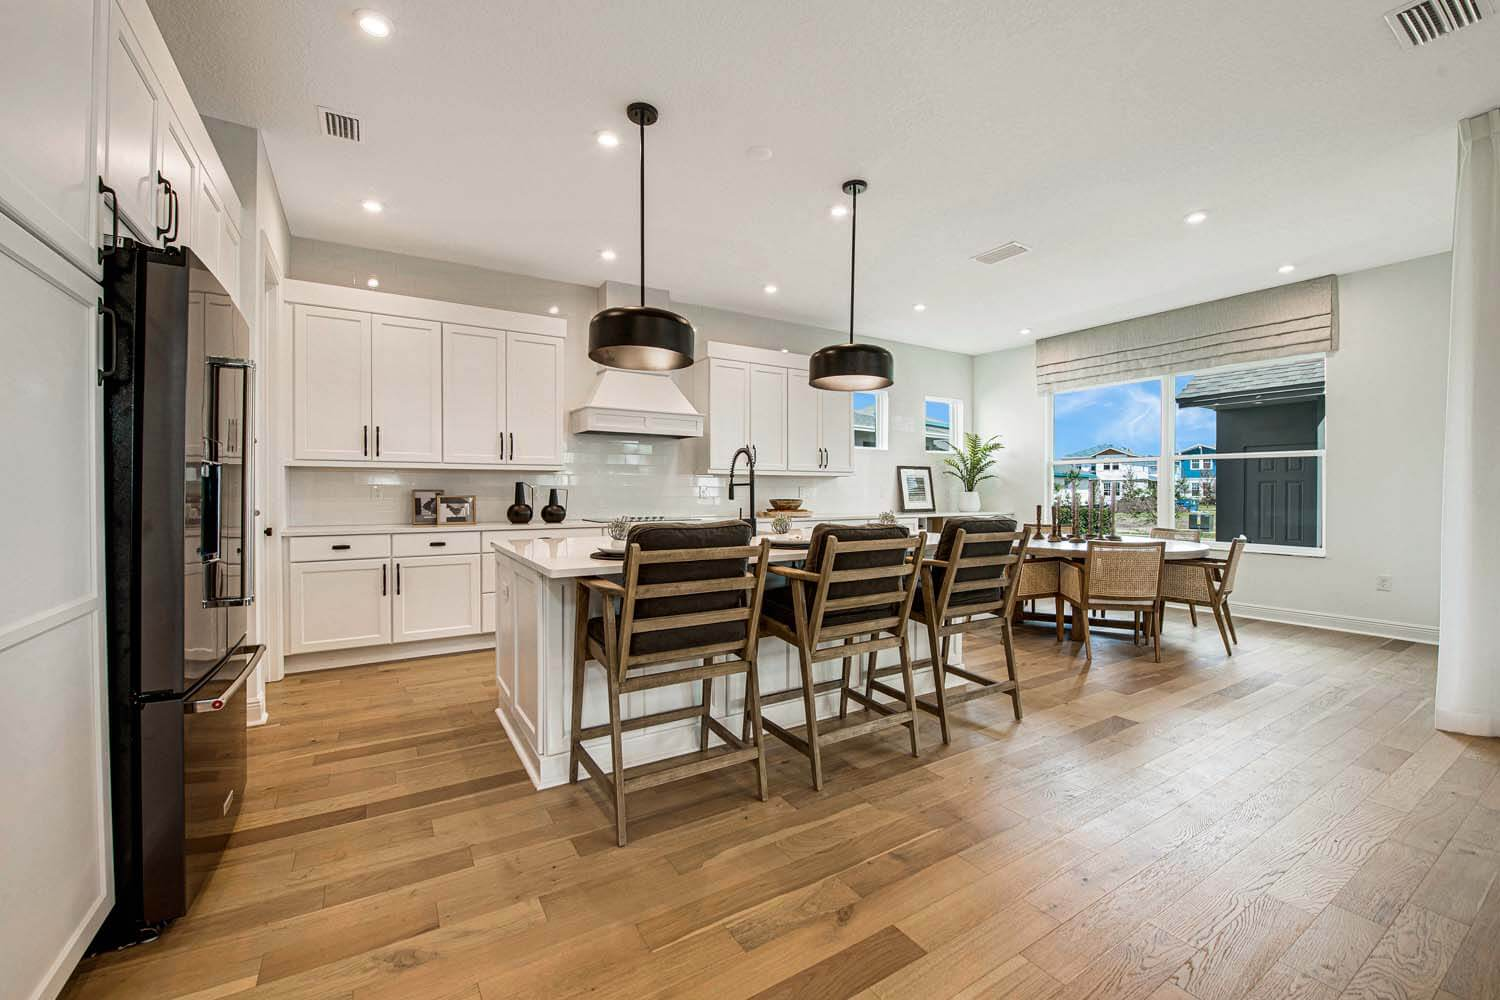 New Tampa  Model Home Symphony in Laureate Park in Lake Nona, located at 6921 Arnoldson St, Orlando, FL Built By Cardel Homes Tampa